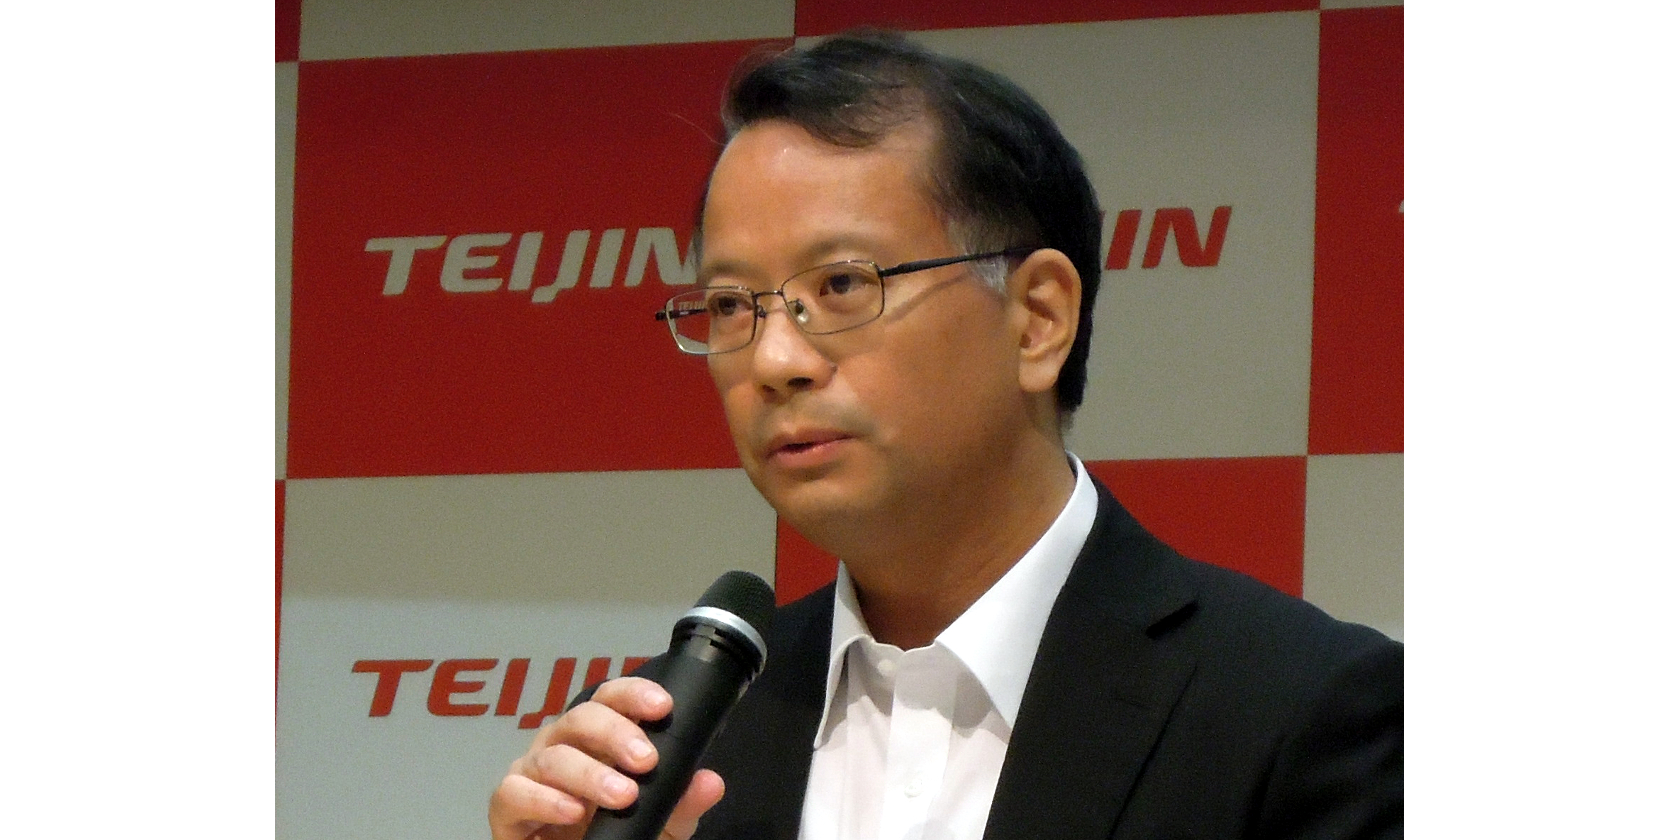 Teijin to Acquire Inapal, Expand Automotive Composites Business in Europe